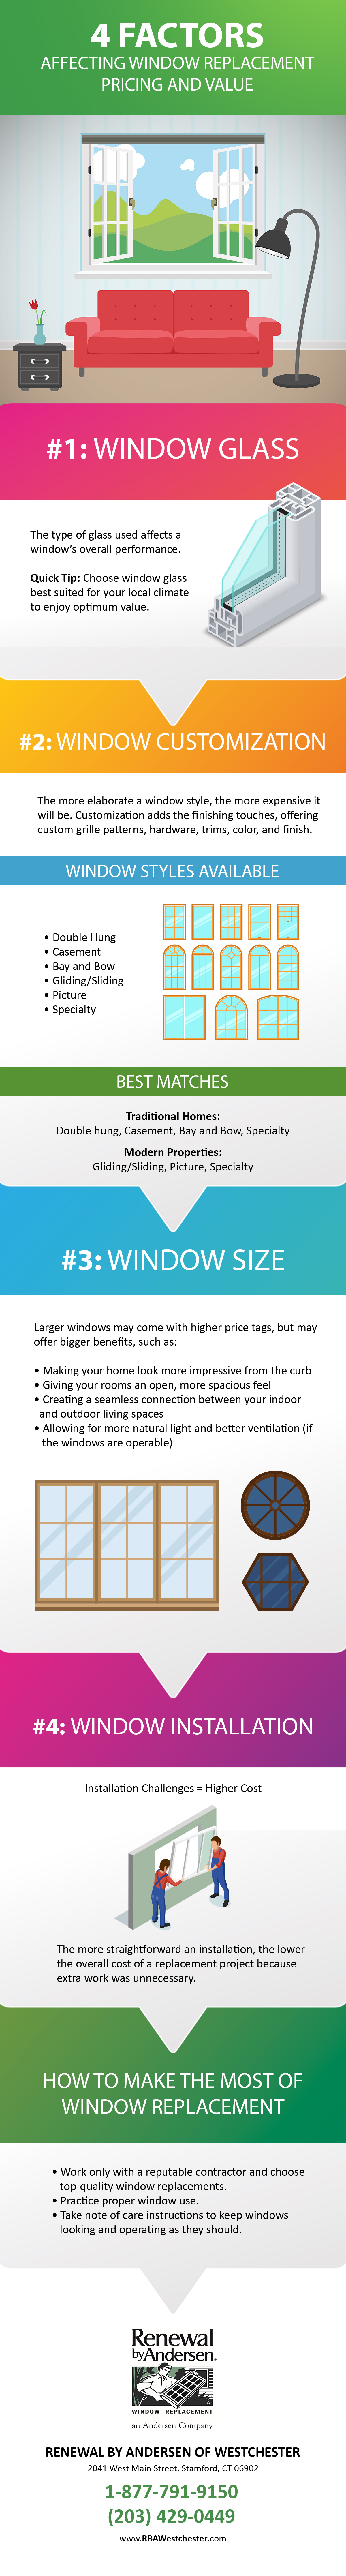 4 Factors Affecting Window Replacement Pricing